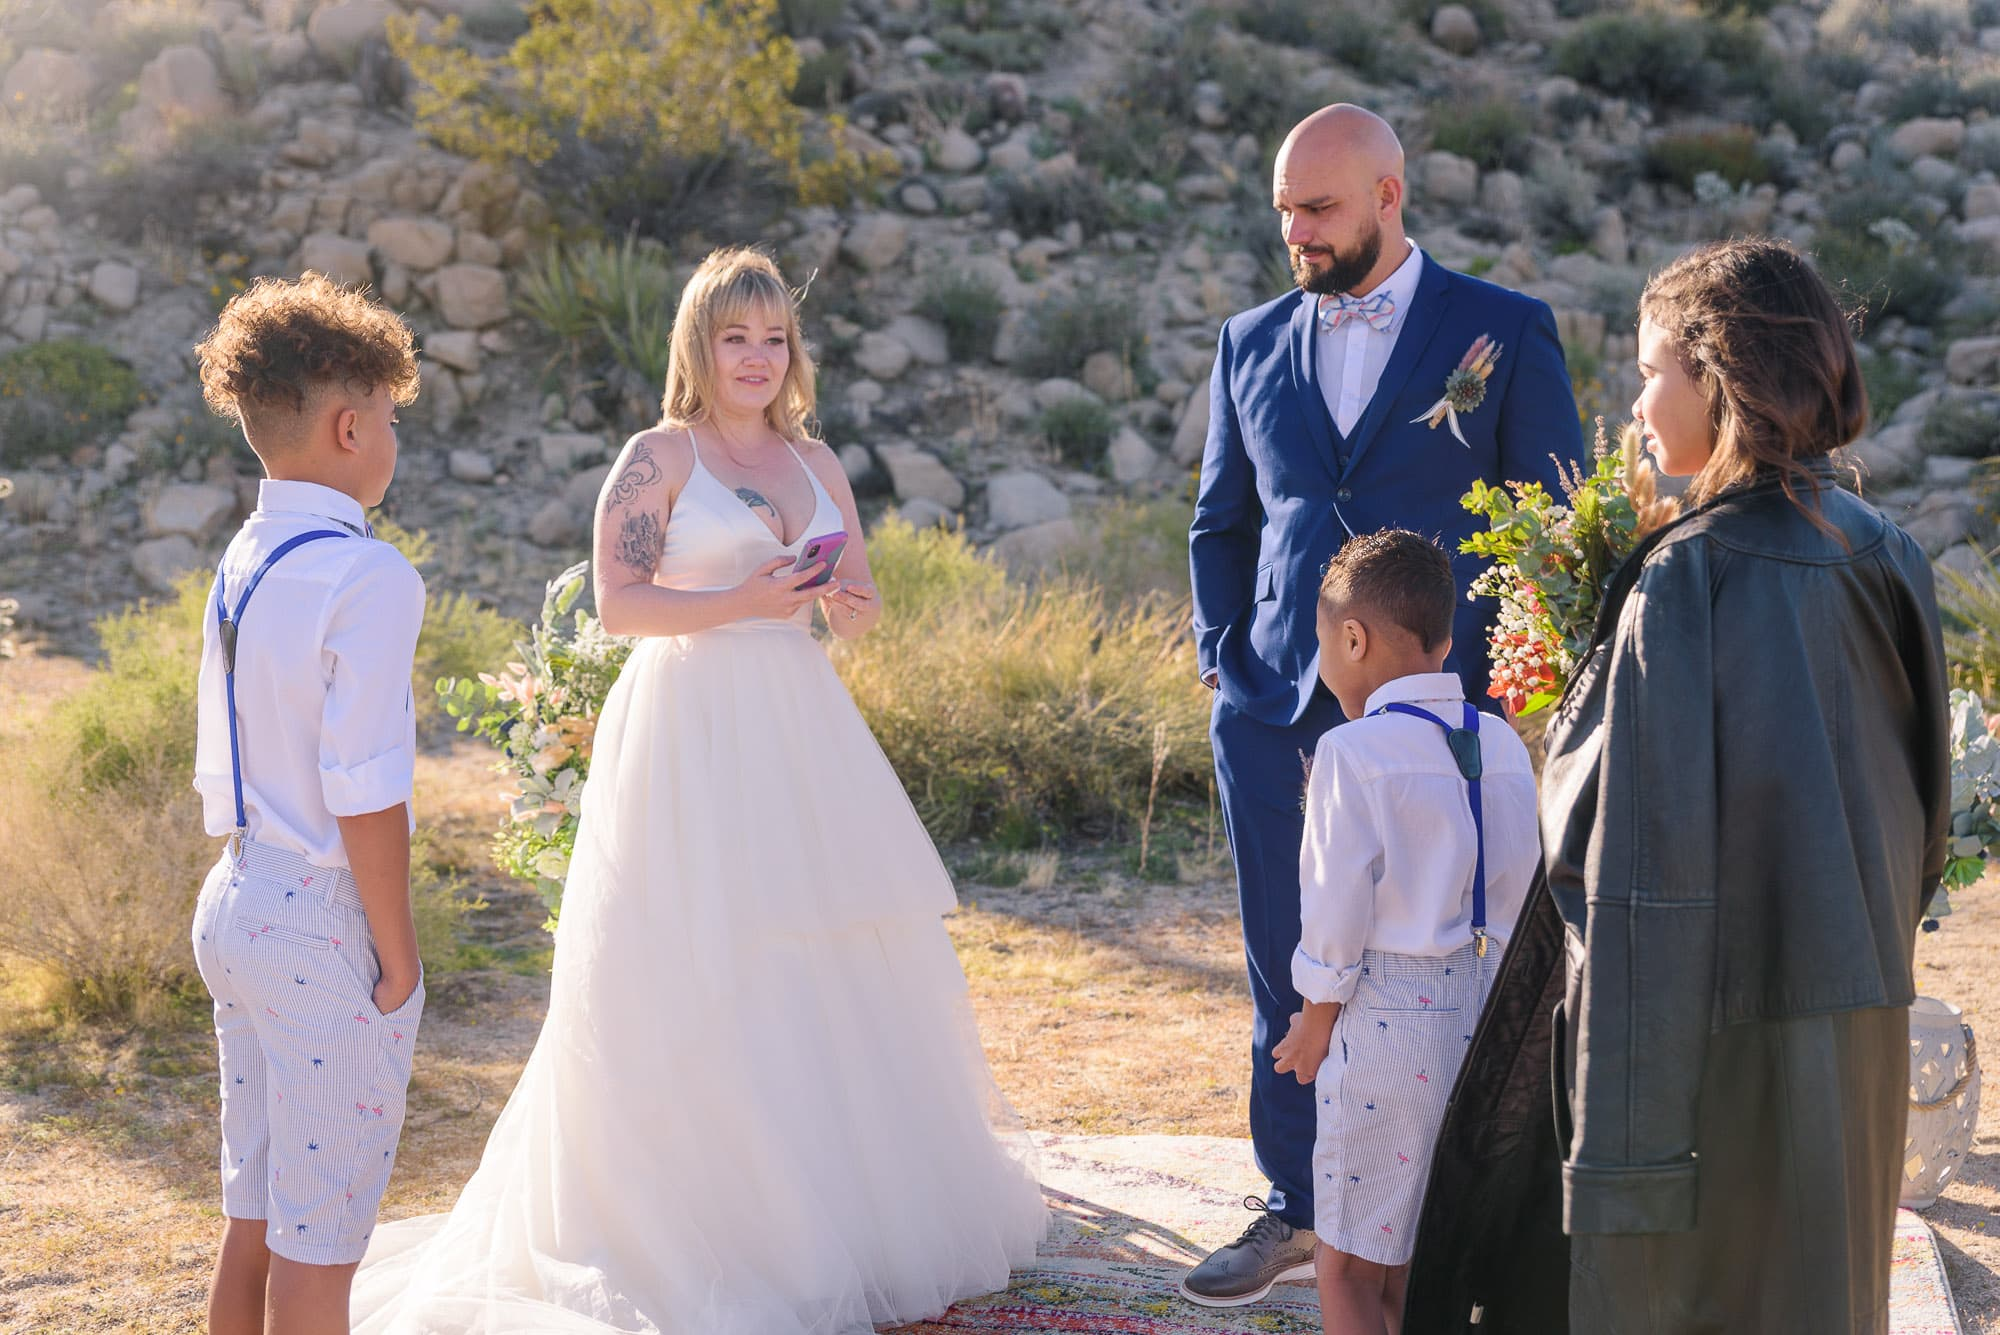 023_Alan_and_Heidi_Joshua_Tree_Spring_Elopement